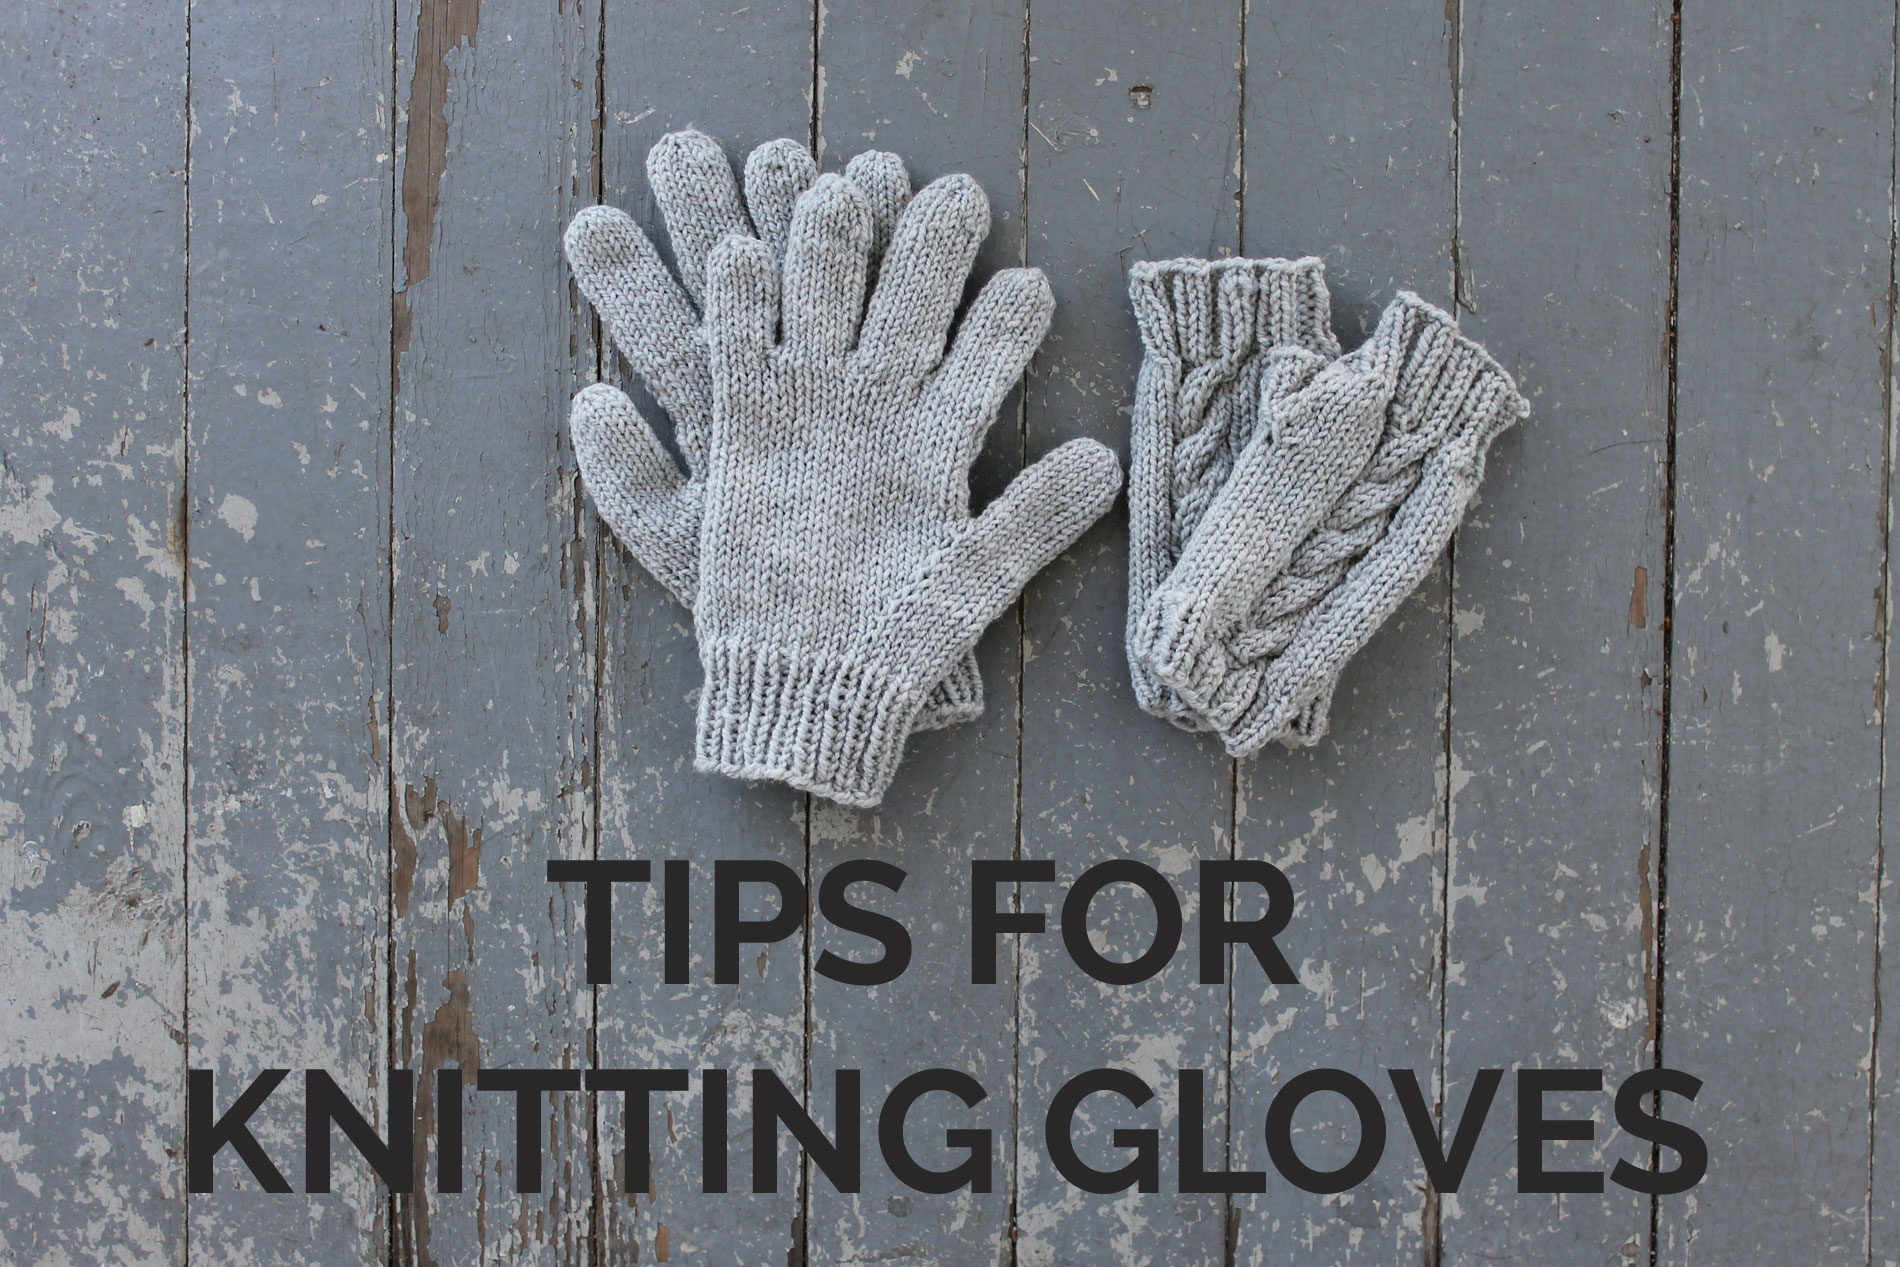 Tips for Knitting Gloves